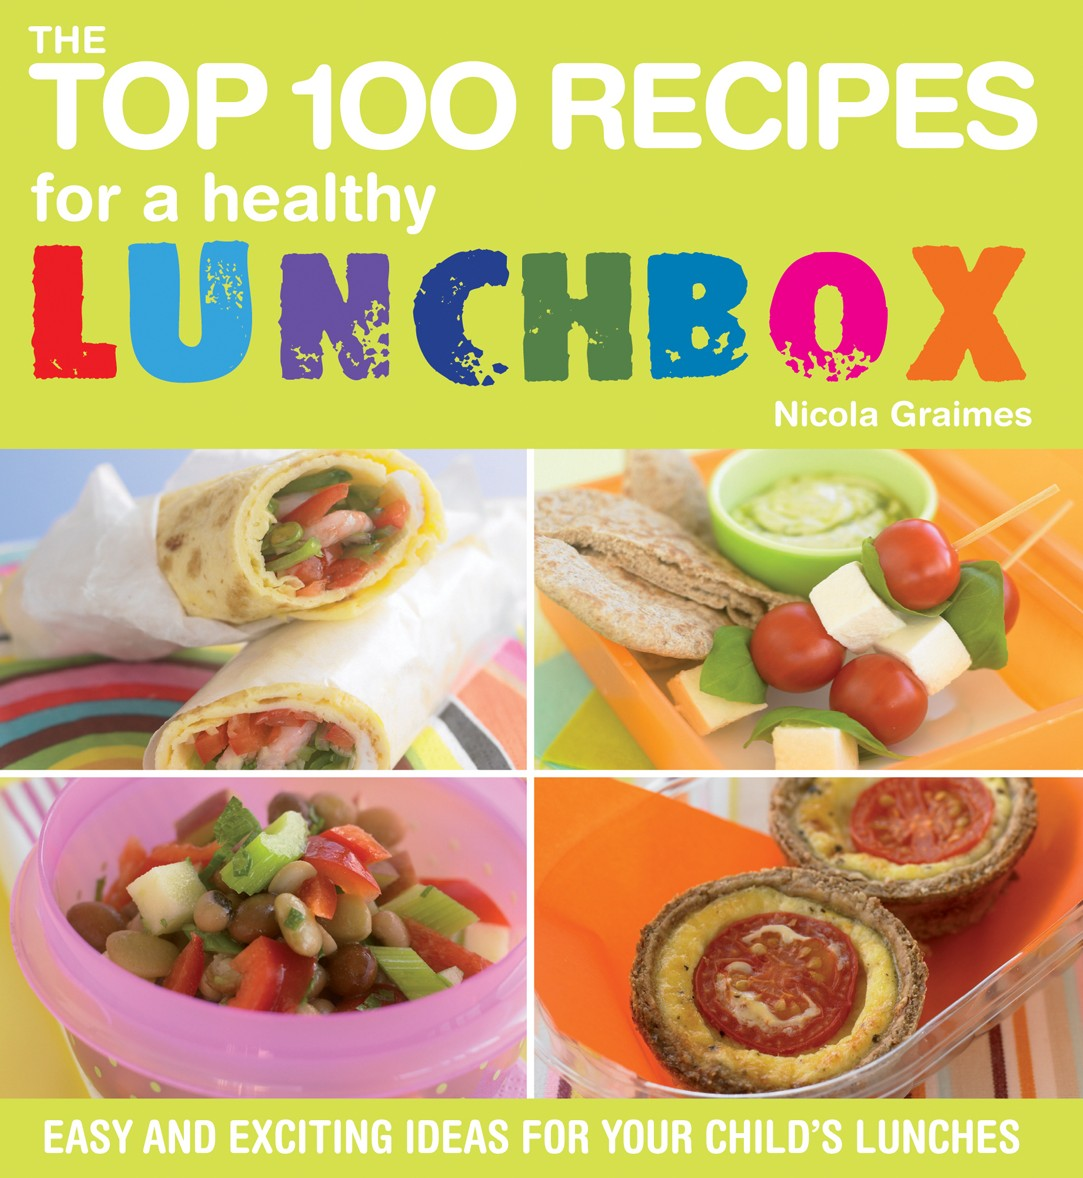 the top 100 recipes for a healthy lunchbox | lunch ideas | nourish